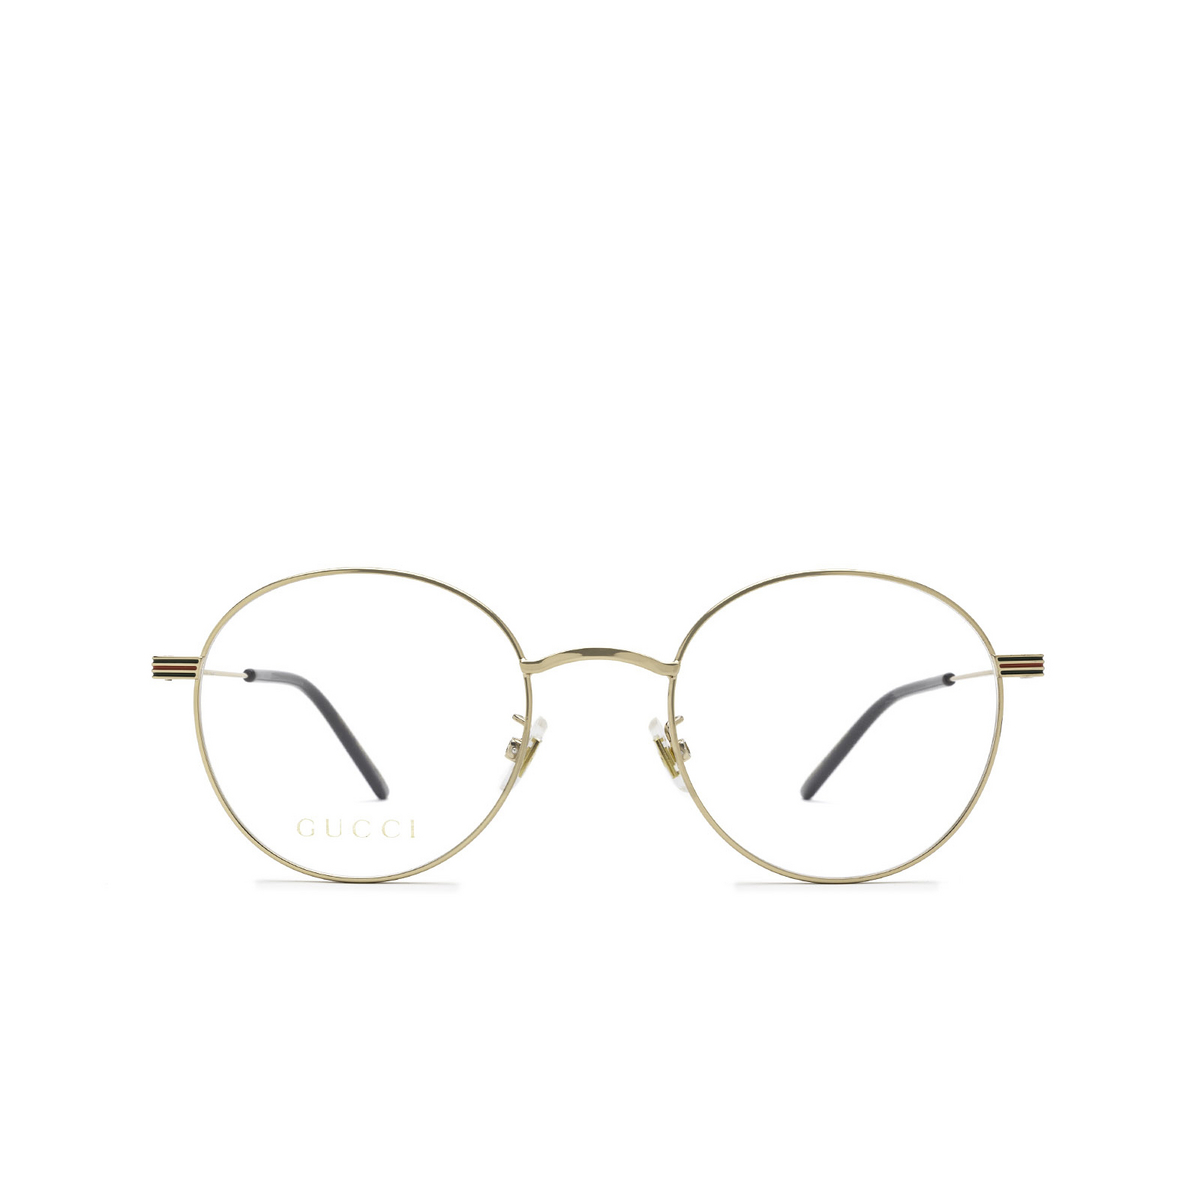 Gucci® Round Eyeglasses: GG1054OK color Gold 001 - front view.